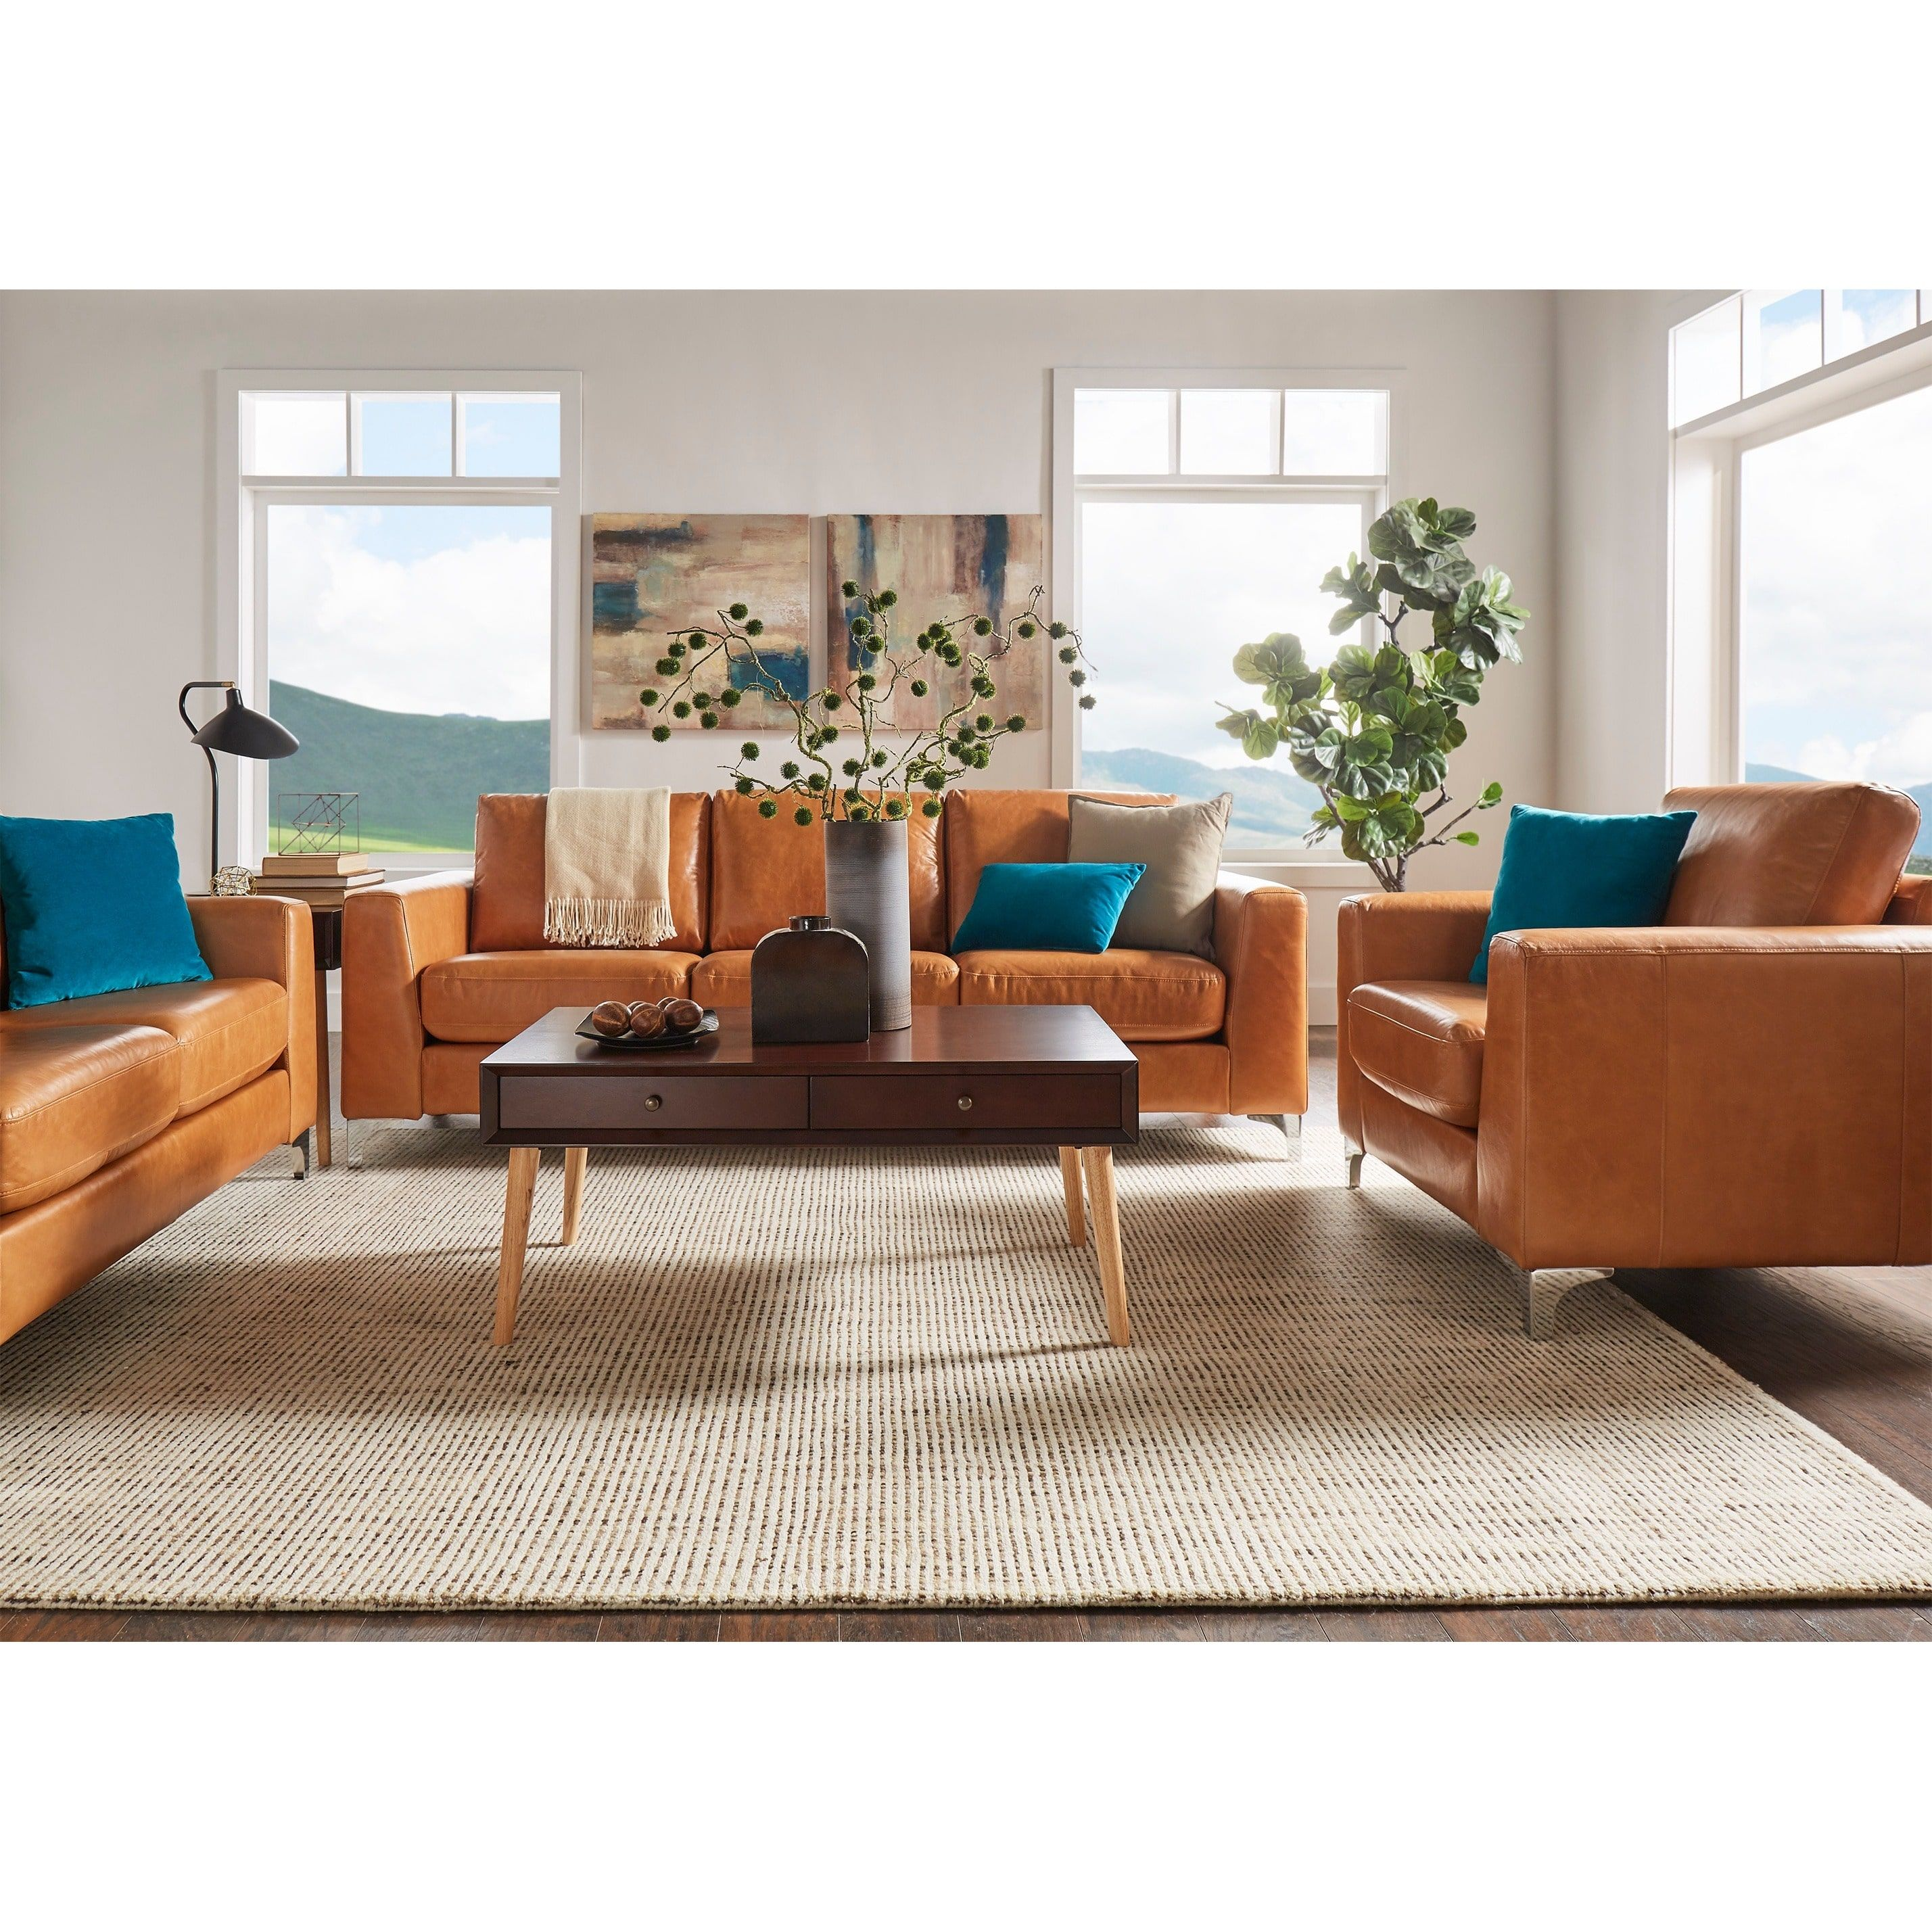 Bastian Aniline Leather Caramel Brown Sofa iNSPIRE Q Modern by iNSPIRE Q